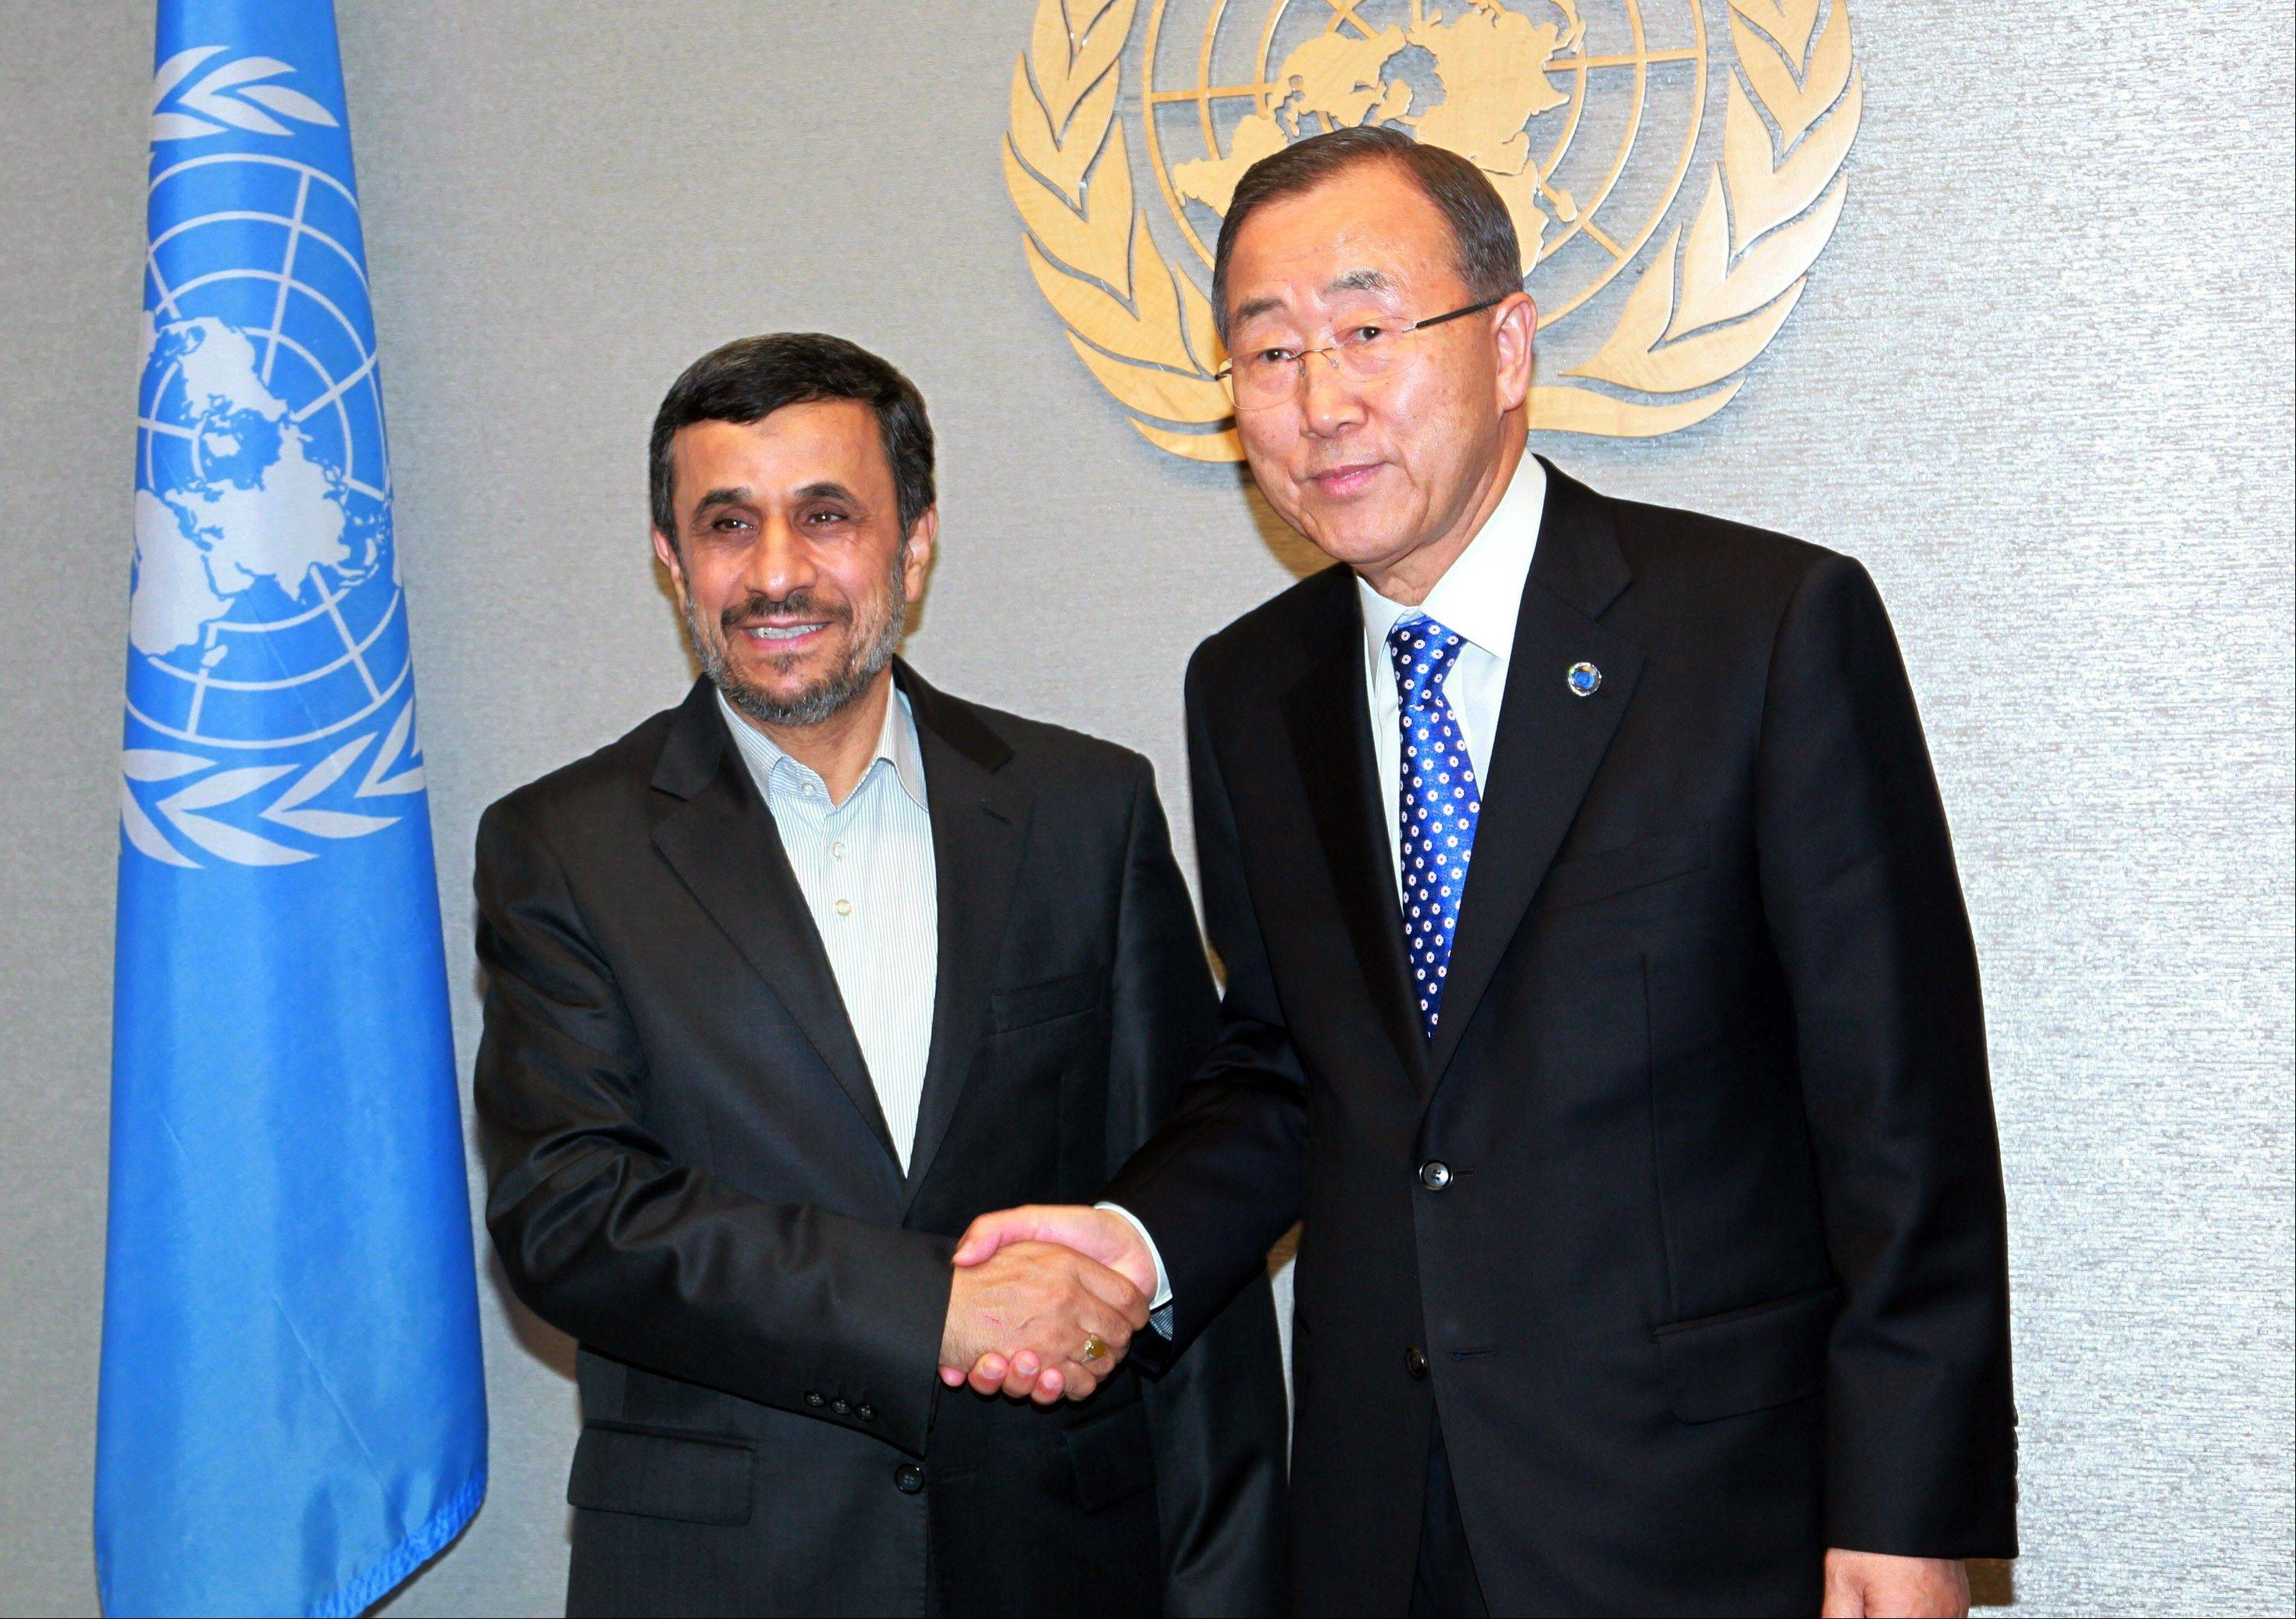 U.N. Secretary-General Ban Ki-moon, right, meets with Iranian President Mahmoud Ahmadinejad, left, at United Nations Headquarters for the 67th session of the General Assembly Sunday.